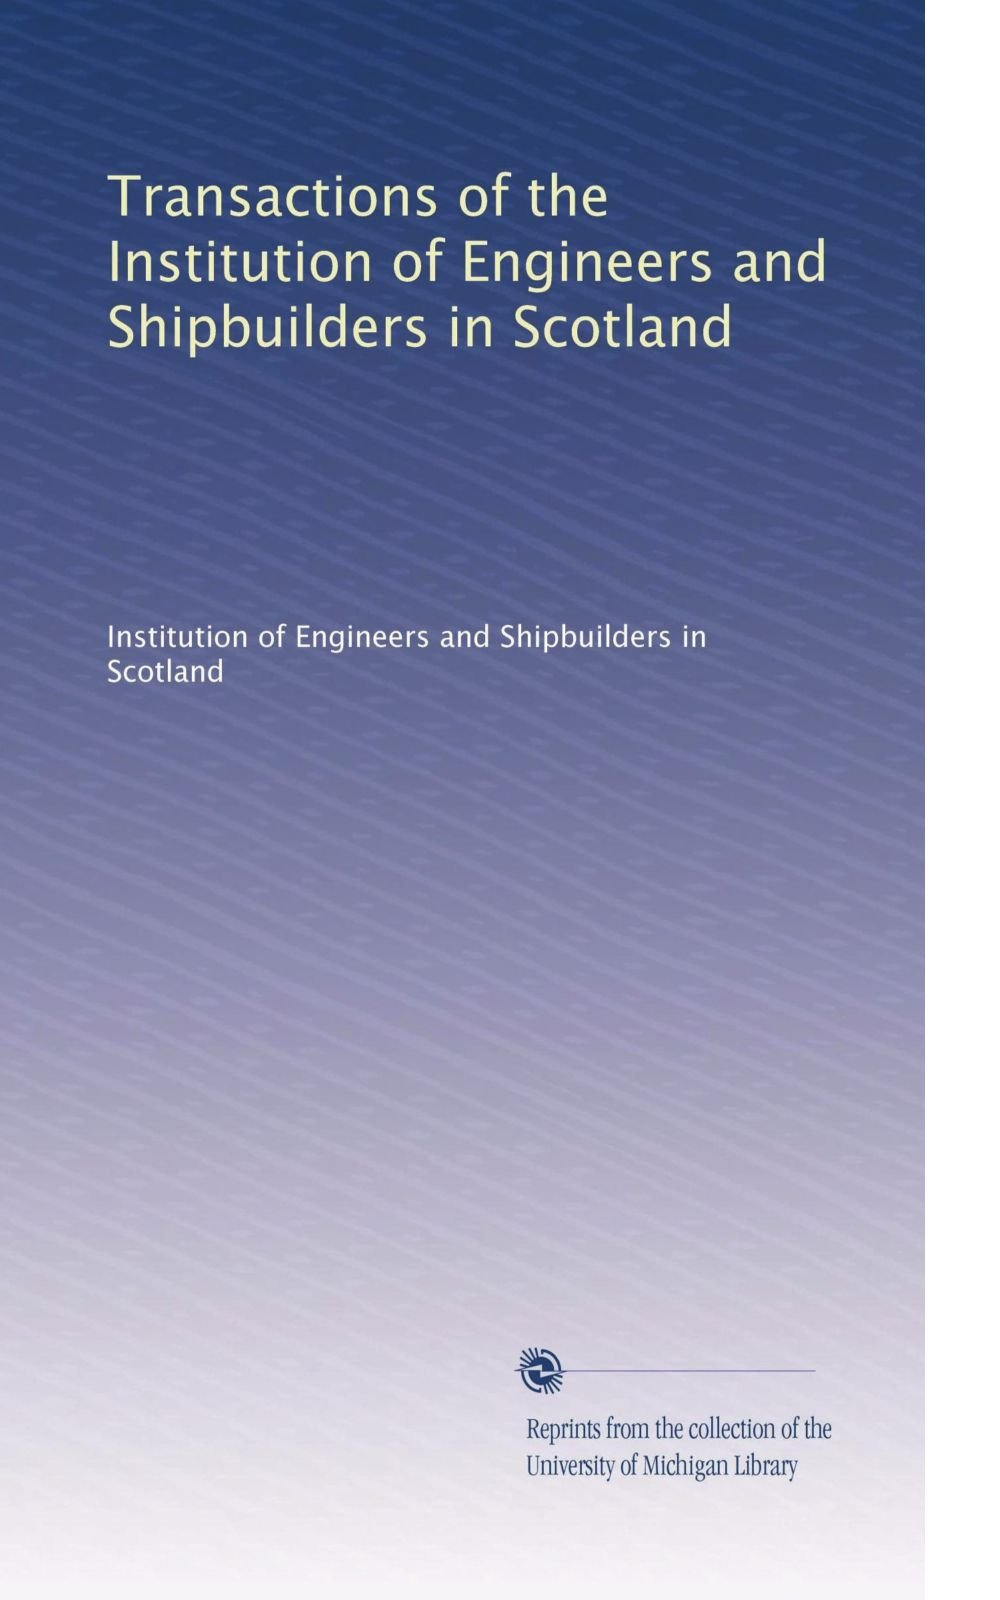 Download Transactions of the Institution of Engineers and Shipbuilders in Scotland (Volume 7) PDF